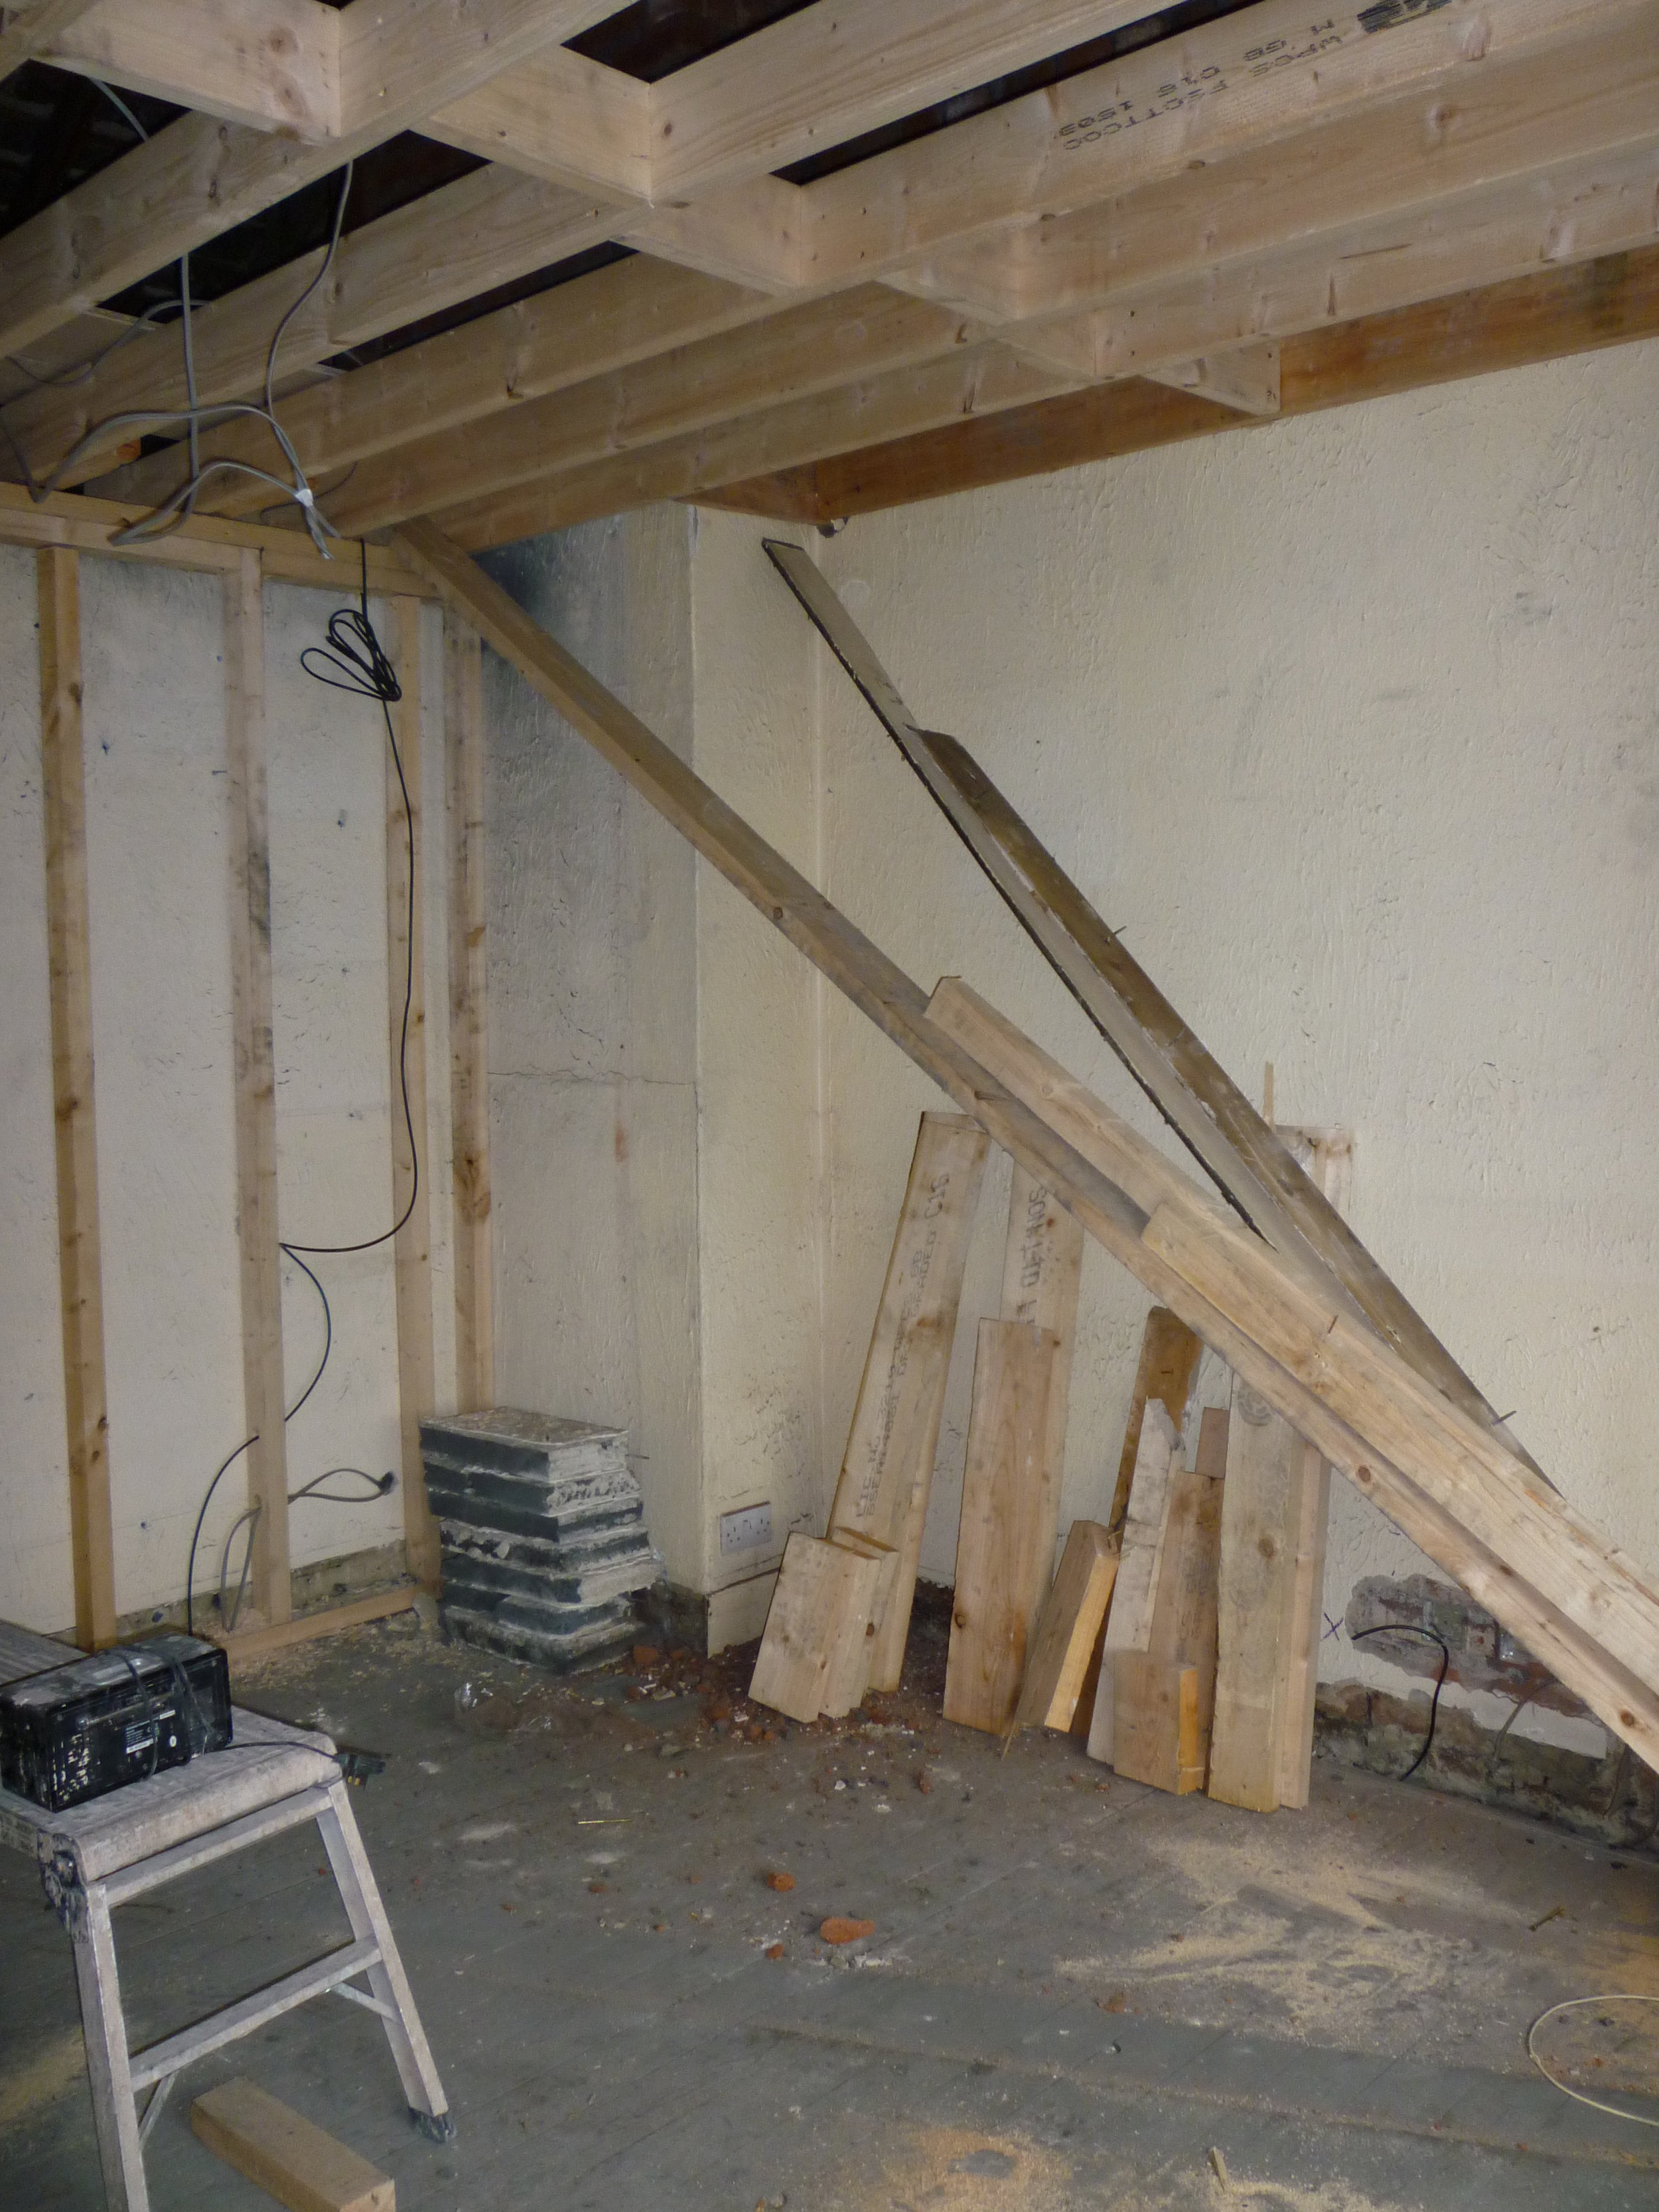 Joists, ceilings and flooring - Joists fitted and re-enforcing current joists when installing new ceilings / flooring